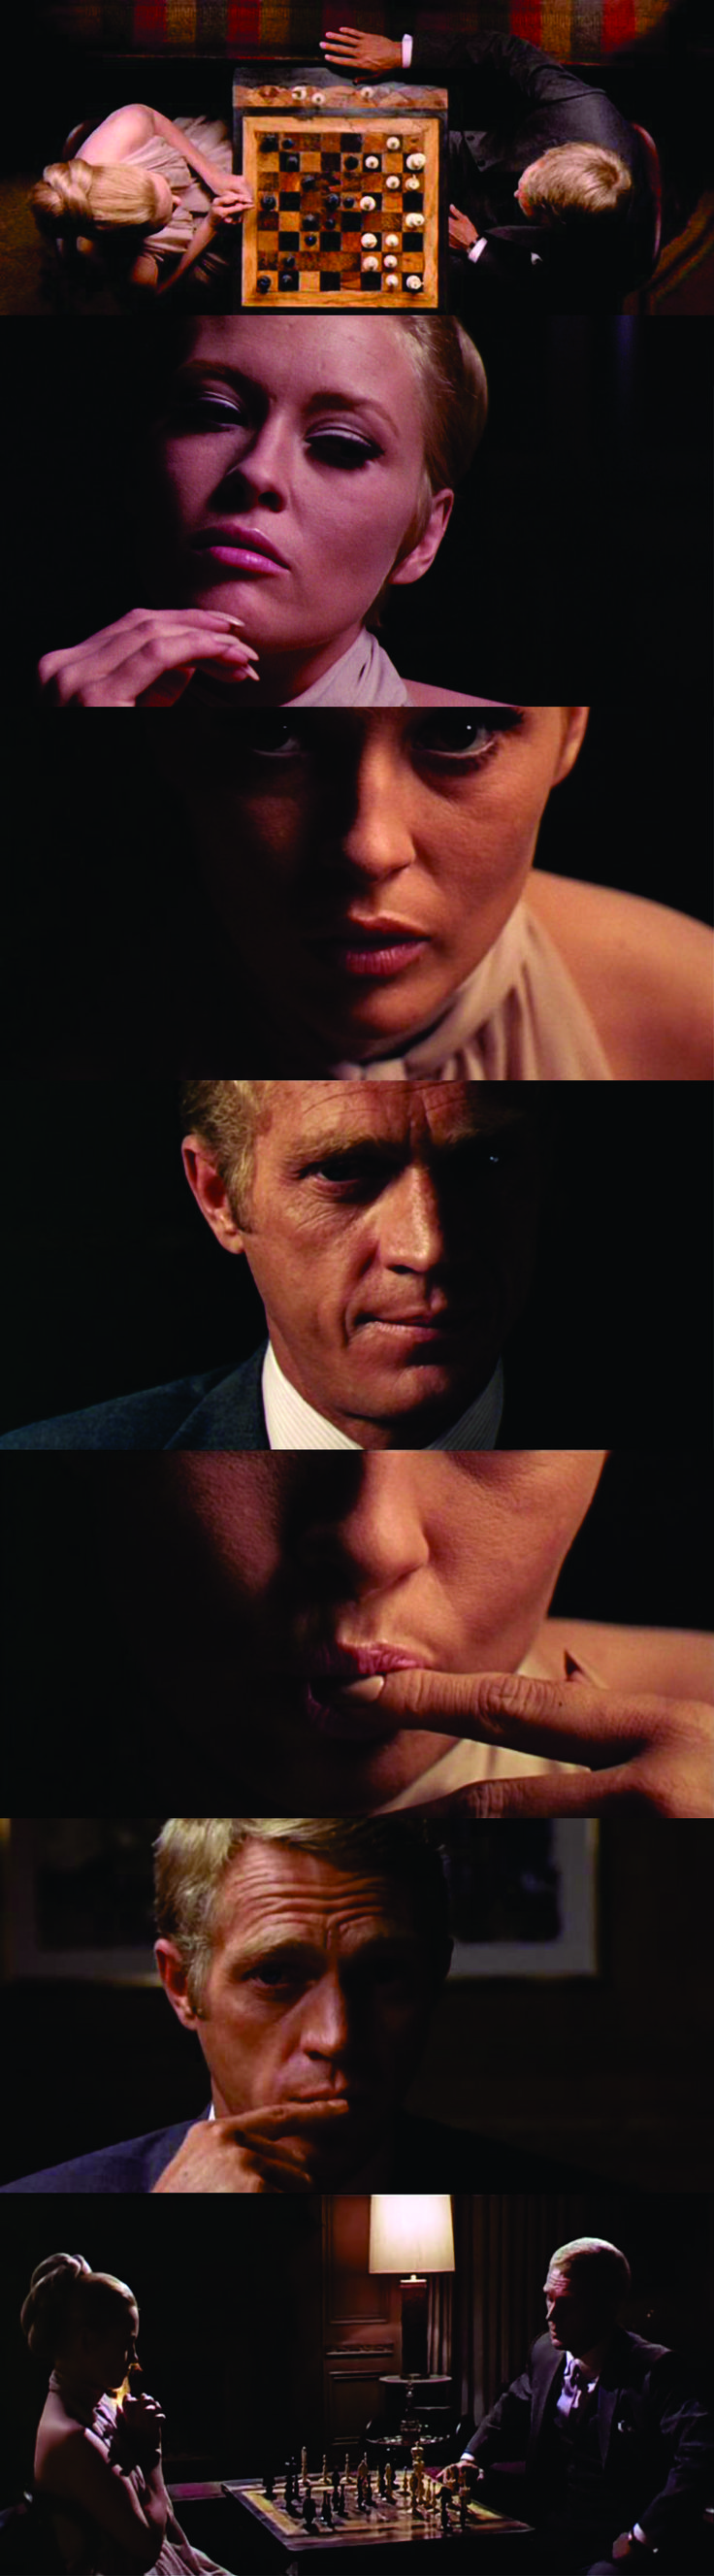 The Thomas Crown Affair (1968). The soundtrack for this movie is unbelievable.